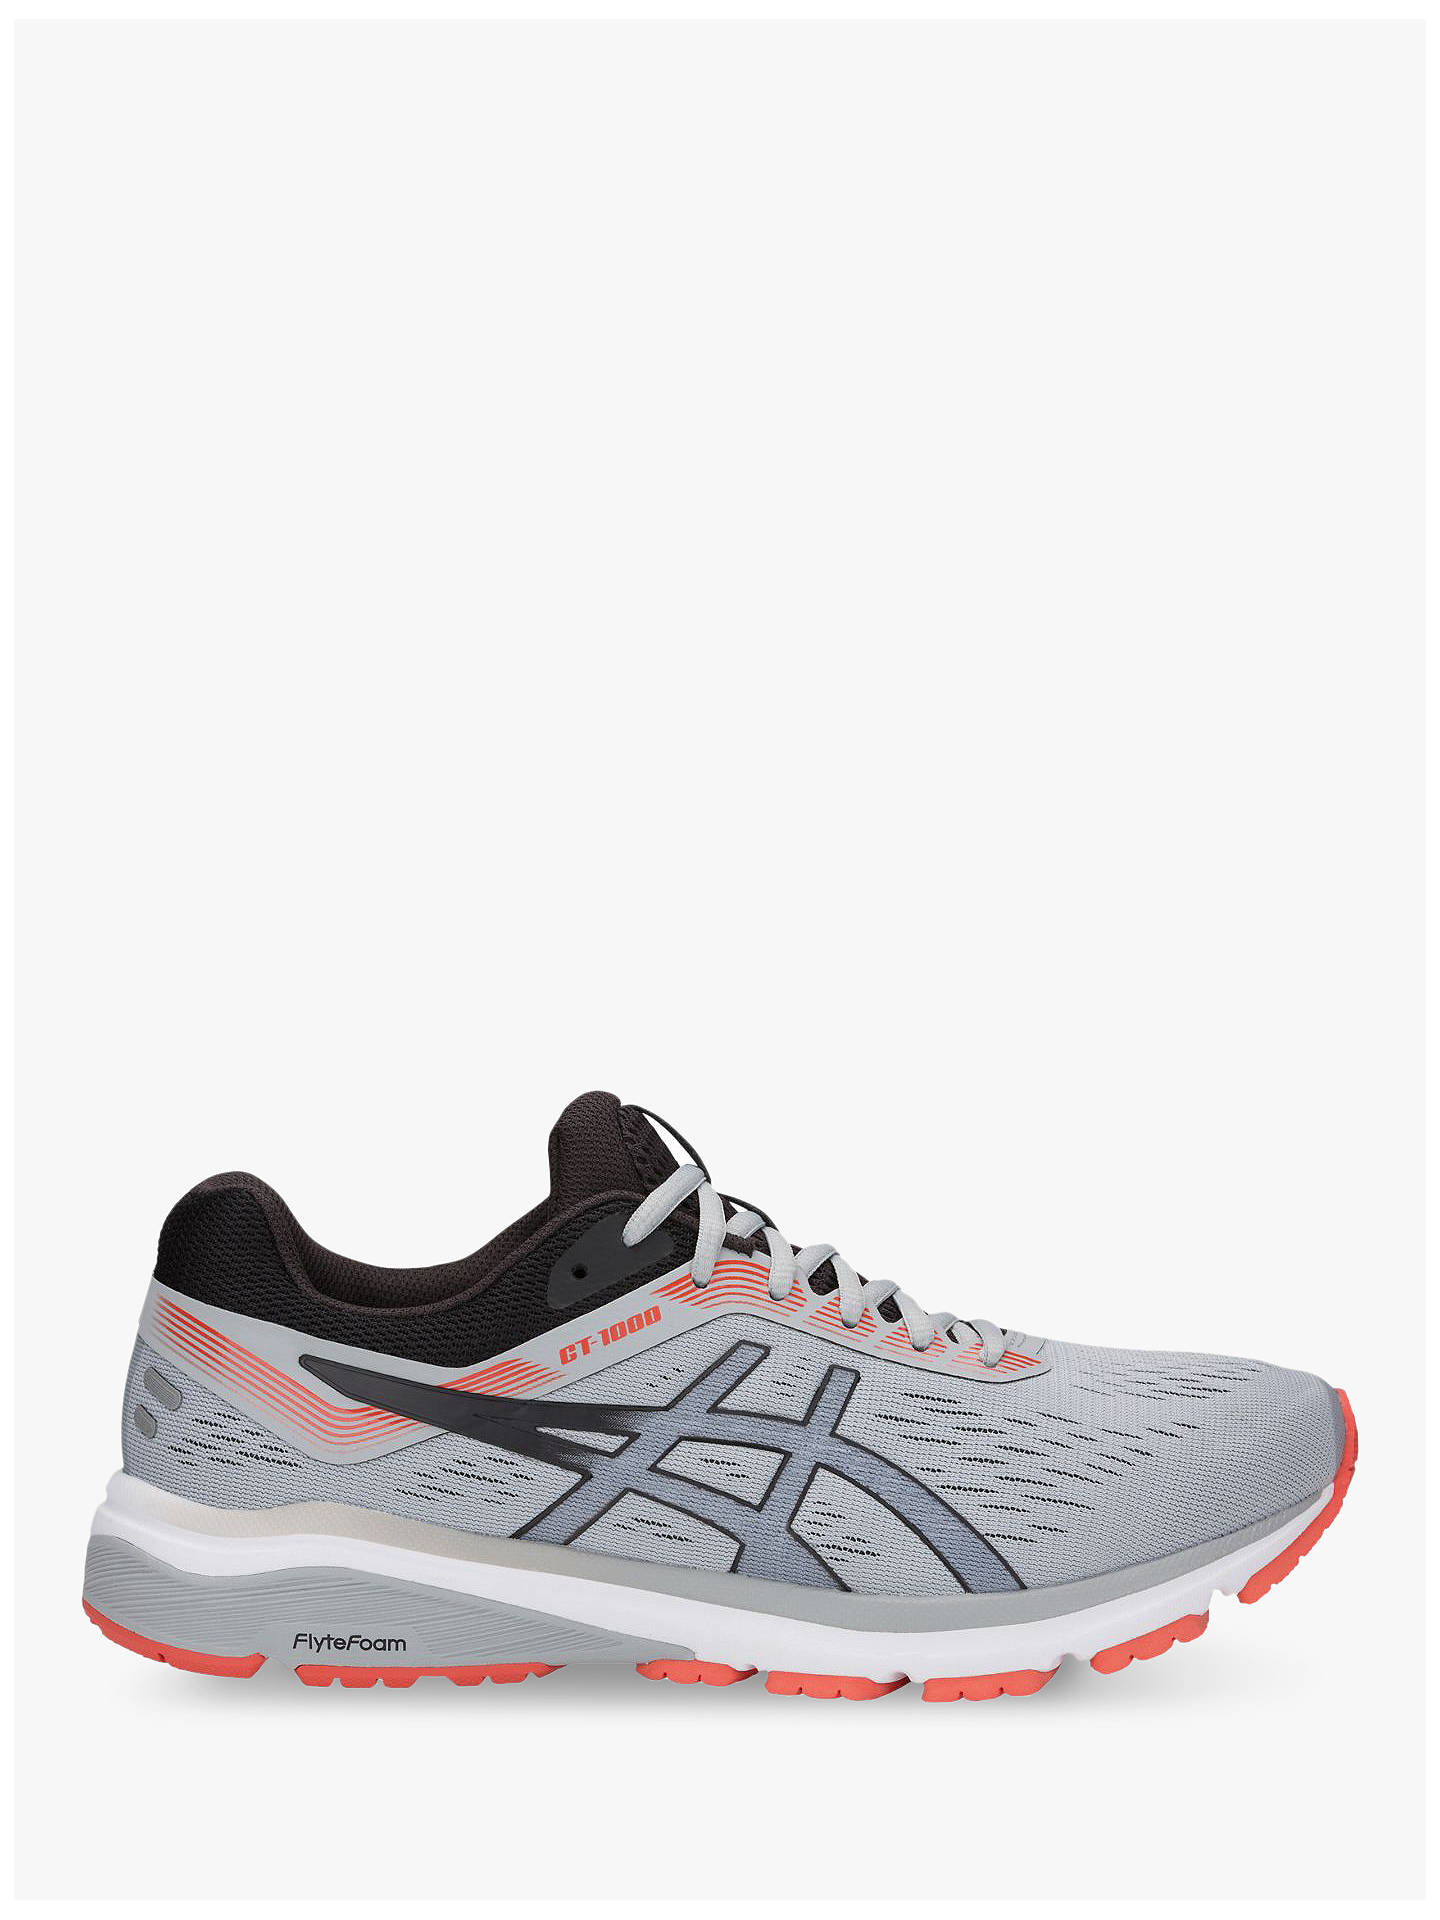 60585e62fdd02 ASICS GT-1000 7 Men s Running Shoes at John Lewis   Partners